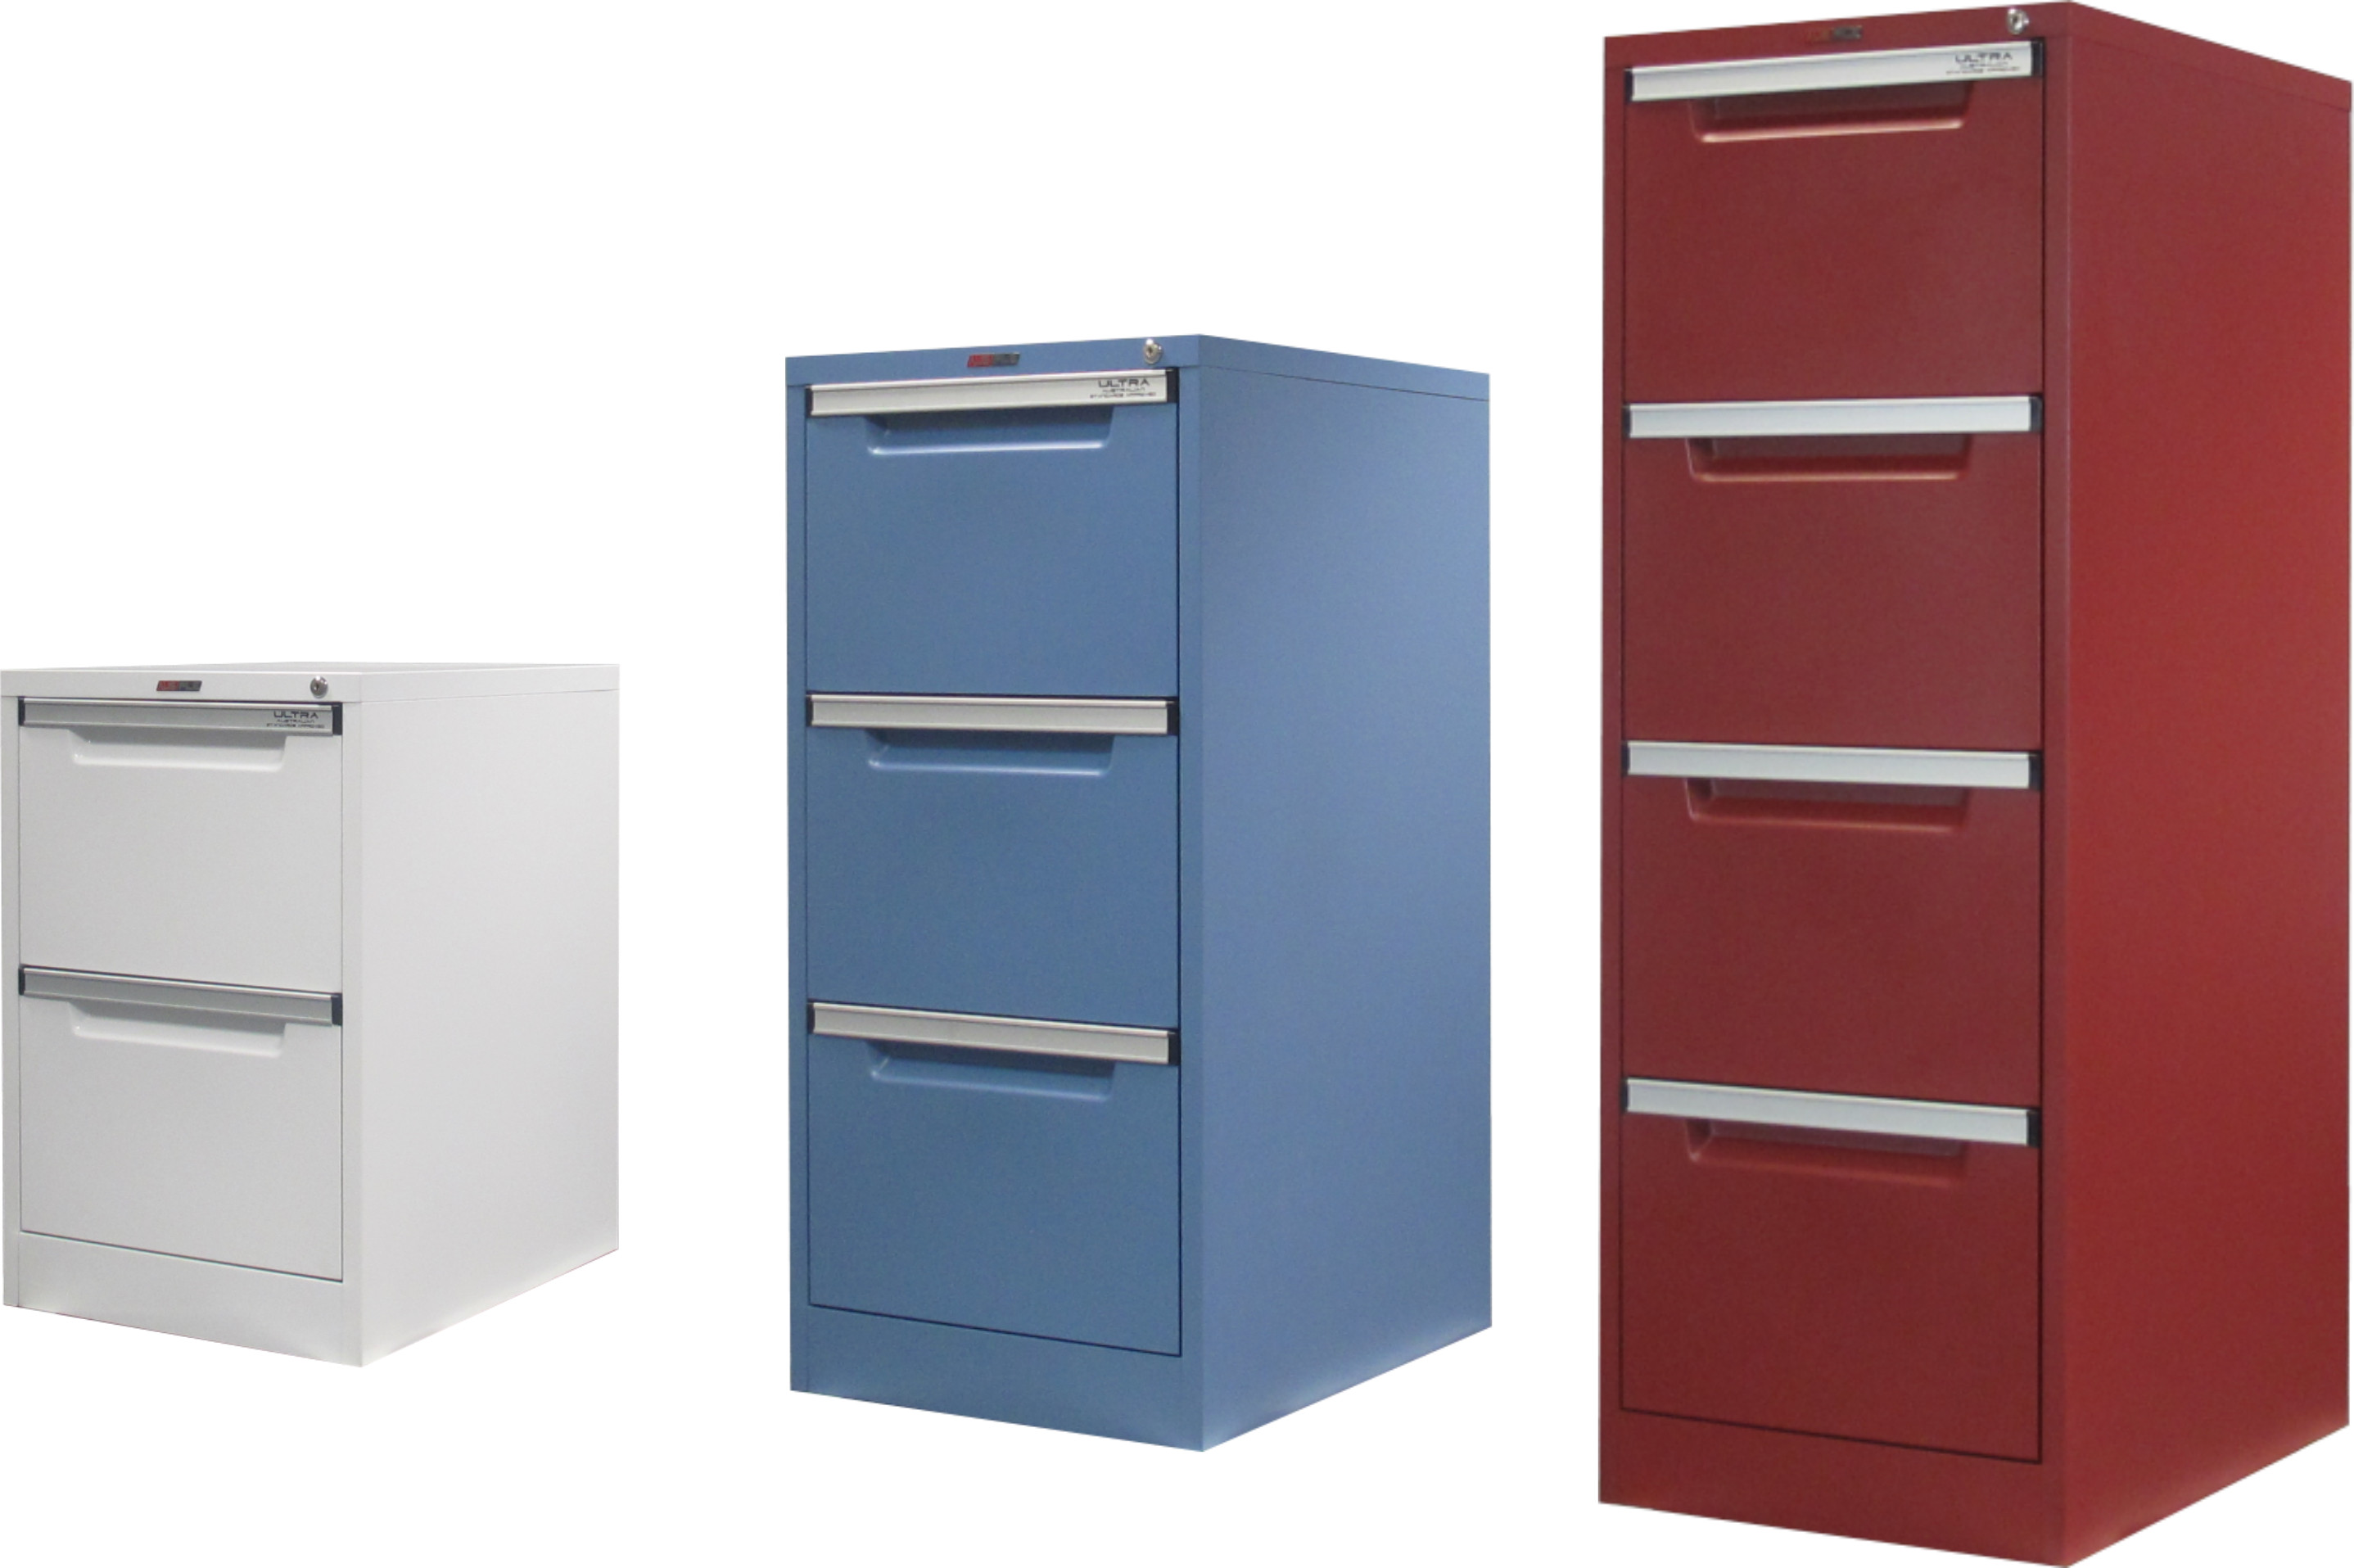 AUSFILE ULTRA FILING CABINETS